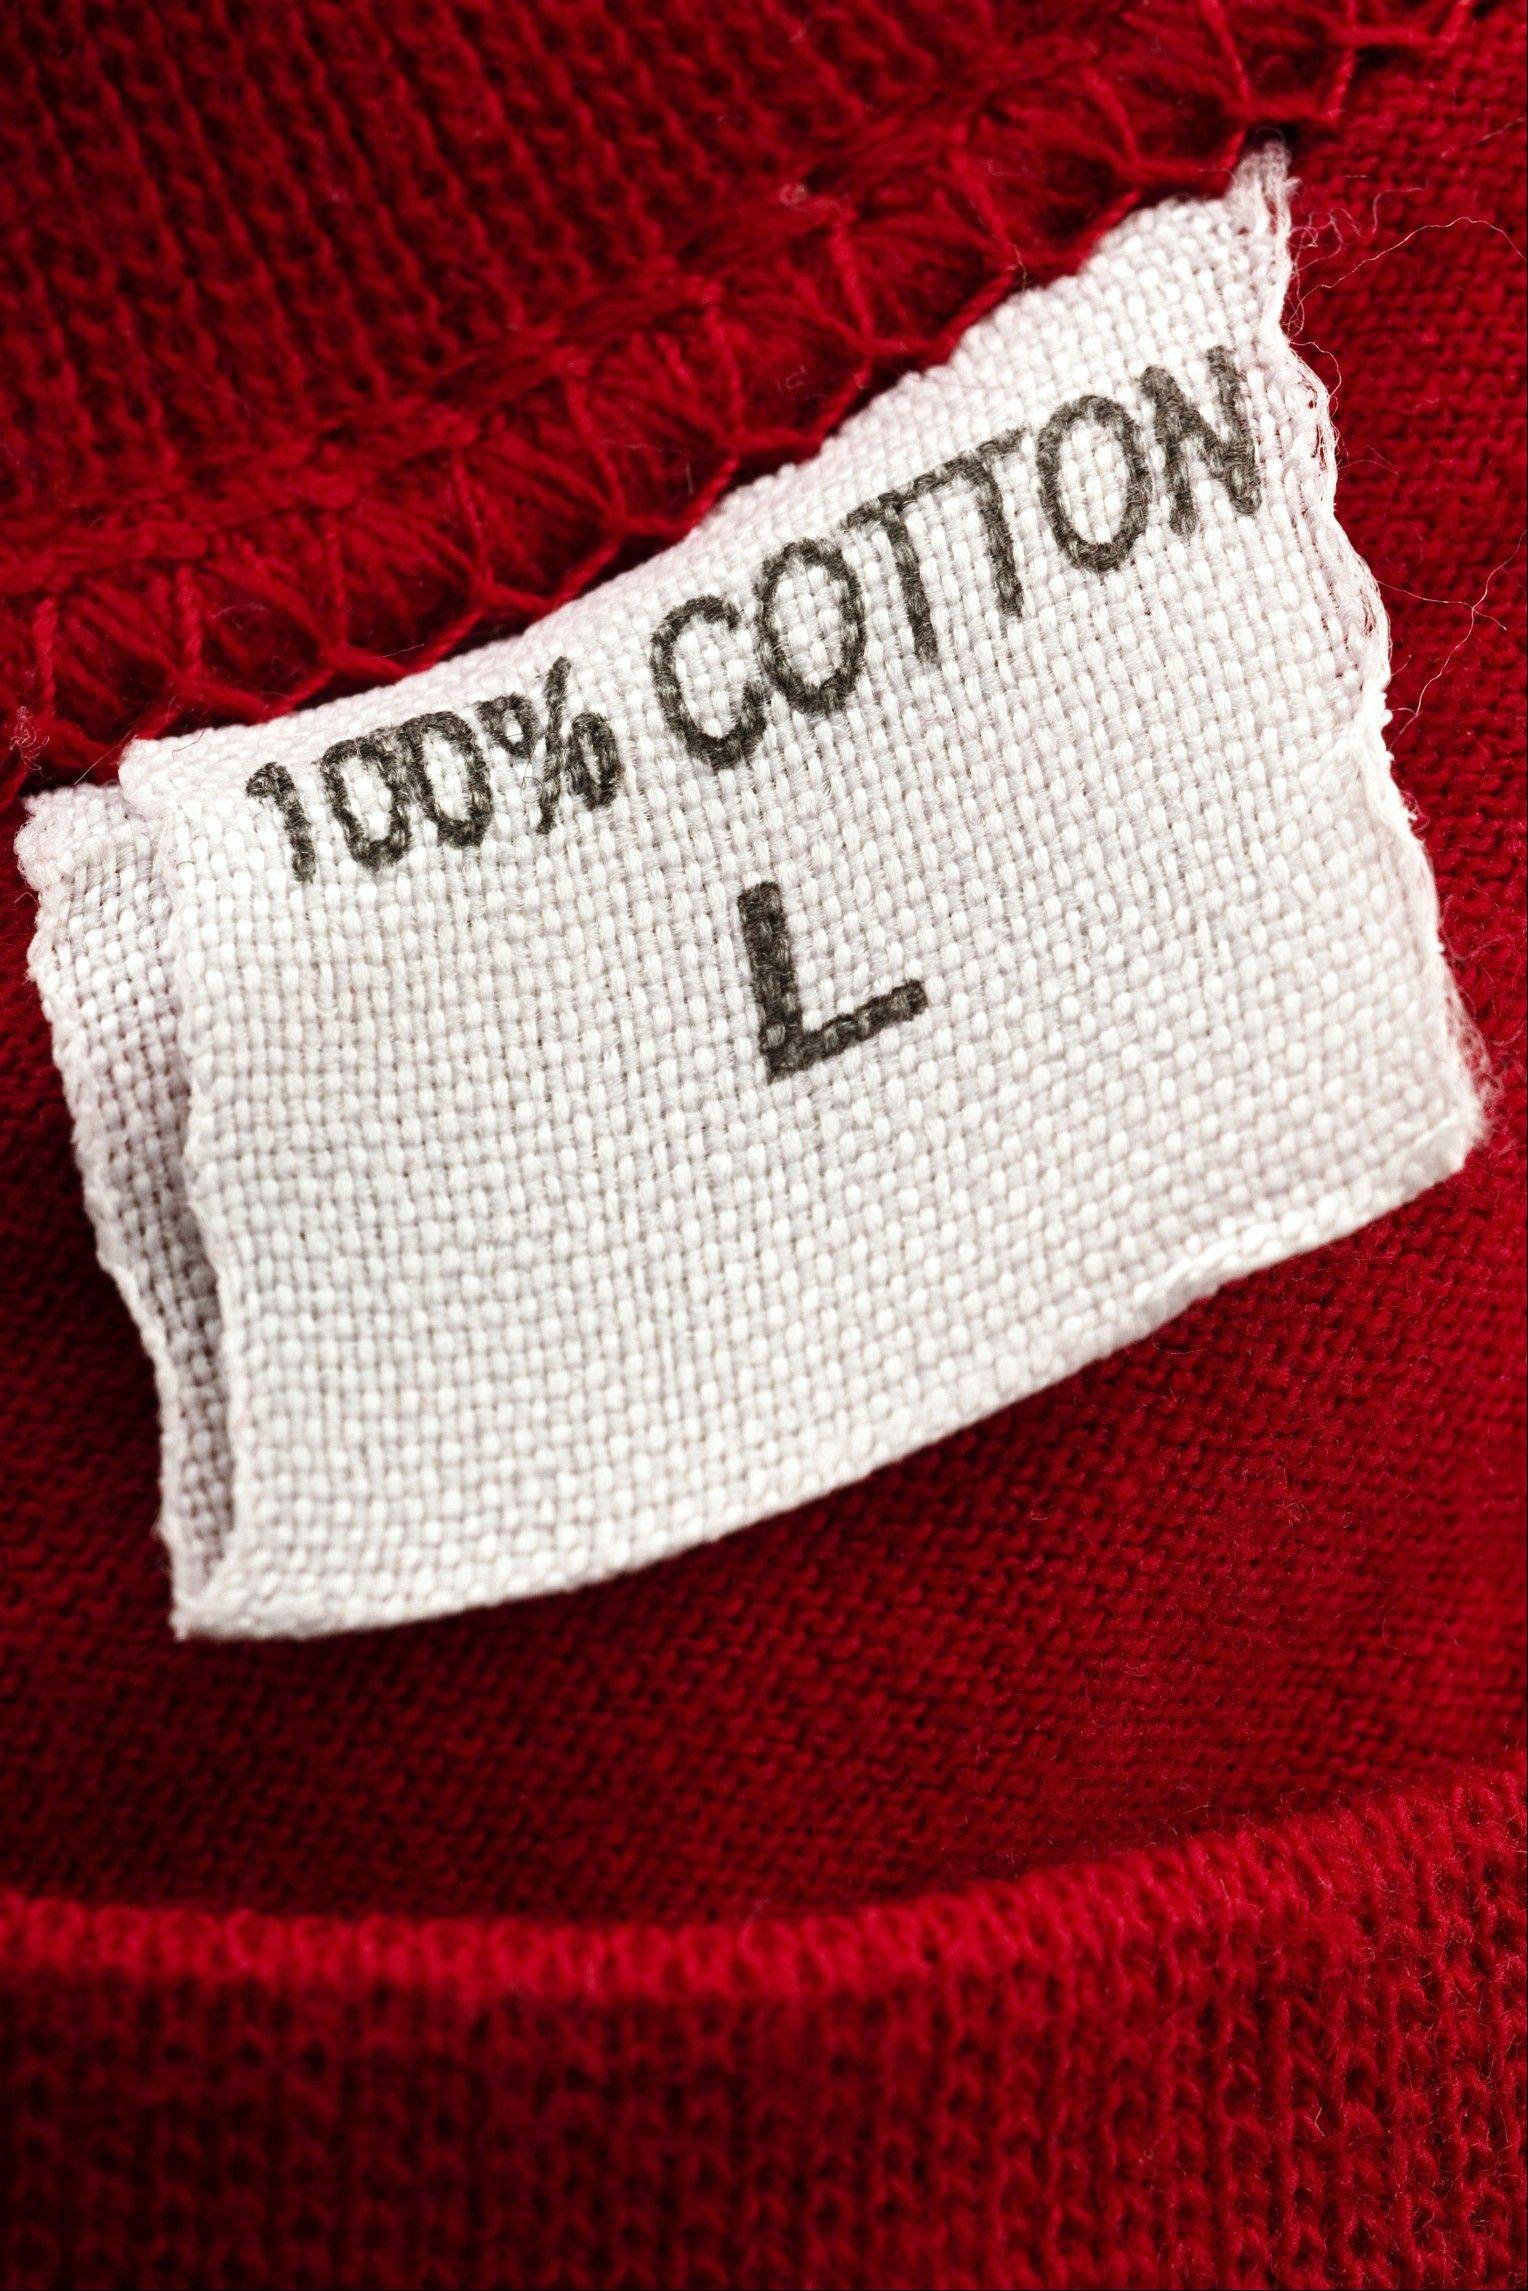 The invention of cotton clothing has saved lives since cotton is easier to clean than wool and less hospitable to body lice.